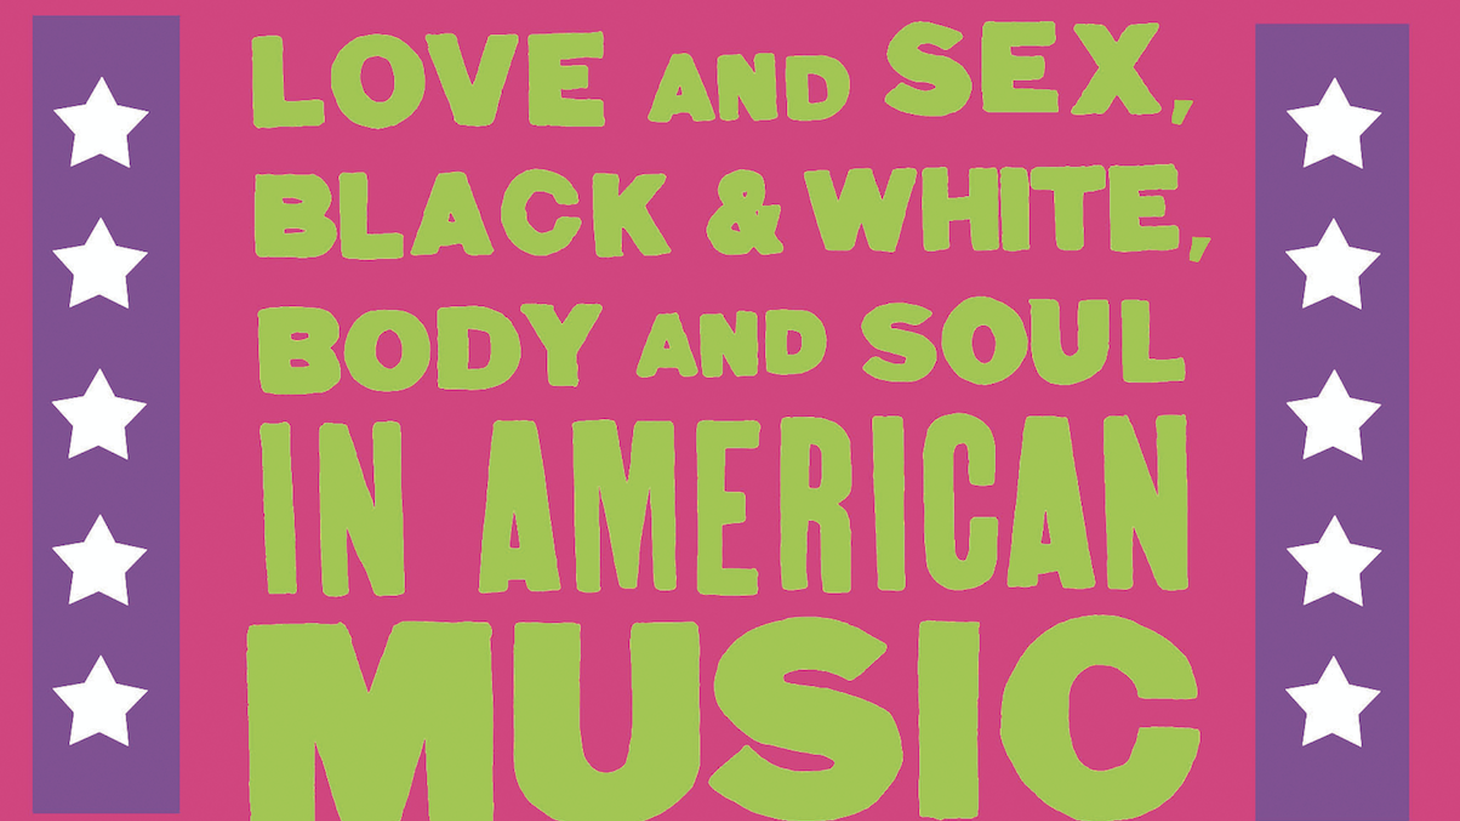 Eroticism has always been a driving force in American popular music, and it has always shaped American ideas -- about sex, love, race, spirituality, feminism, and freedom.